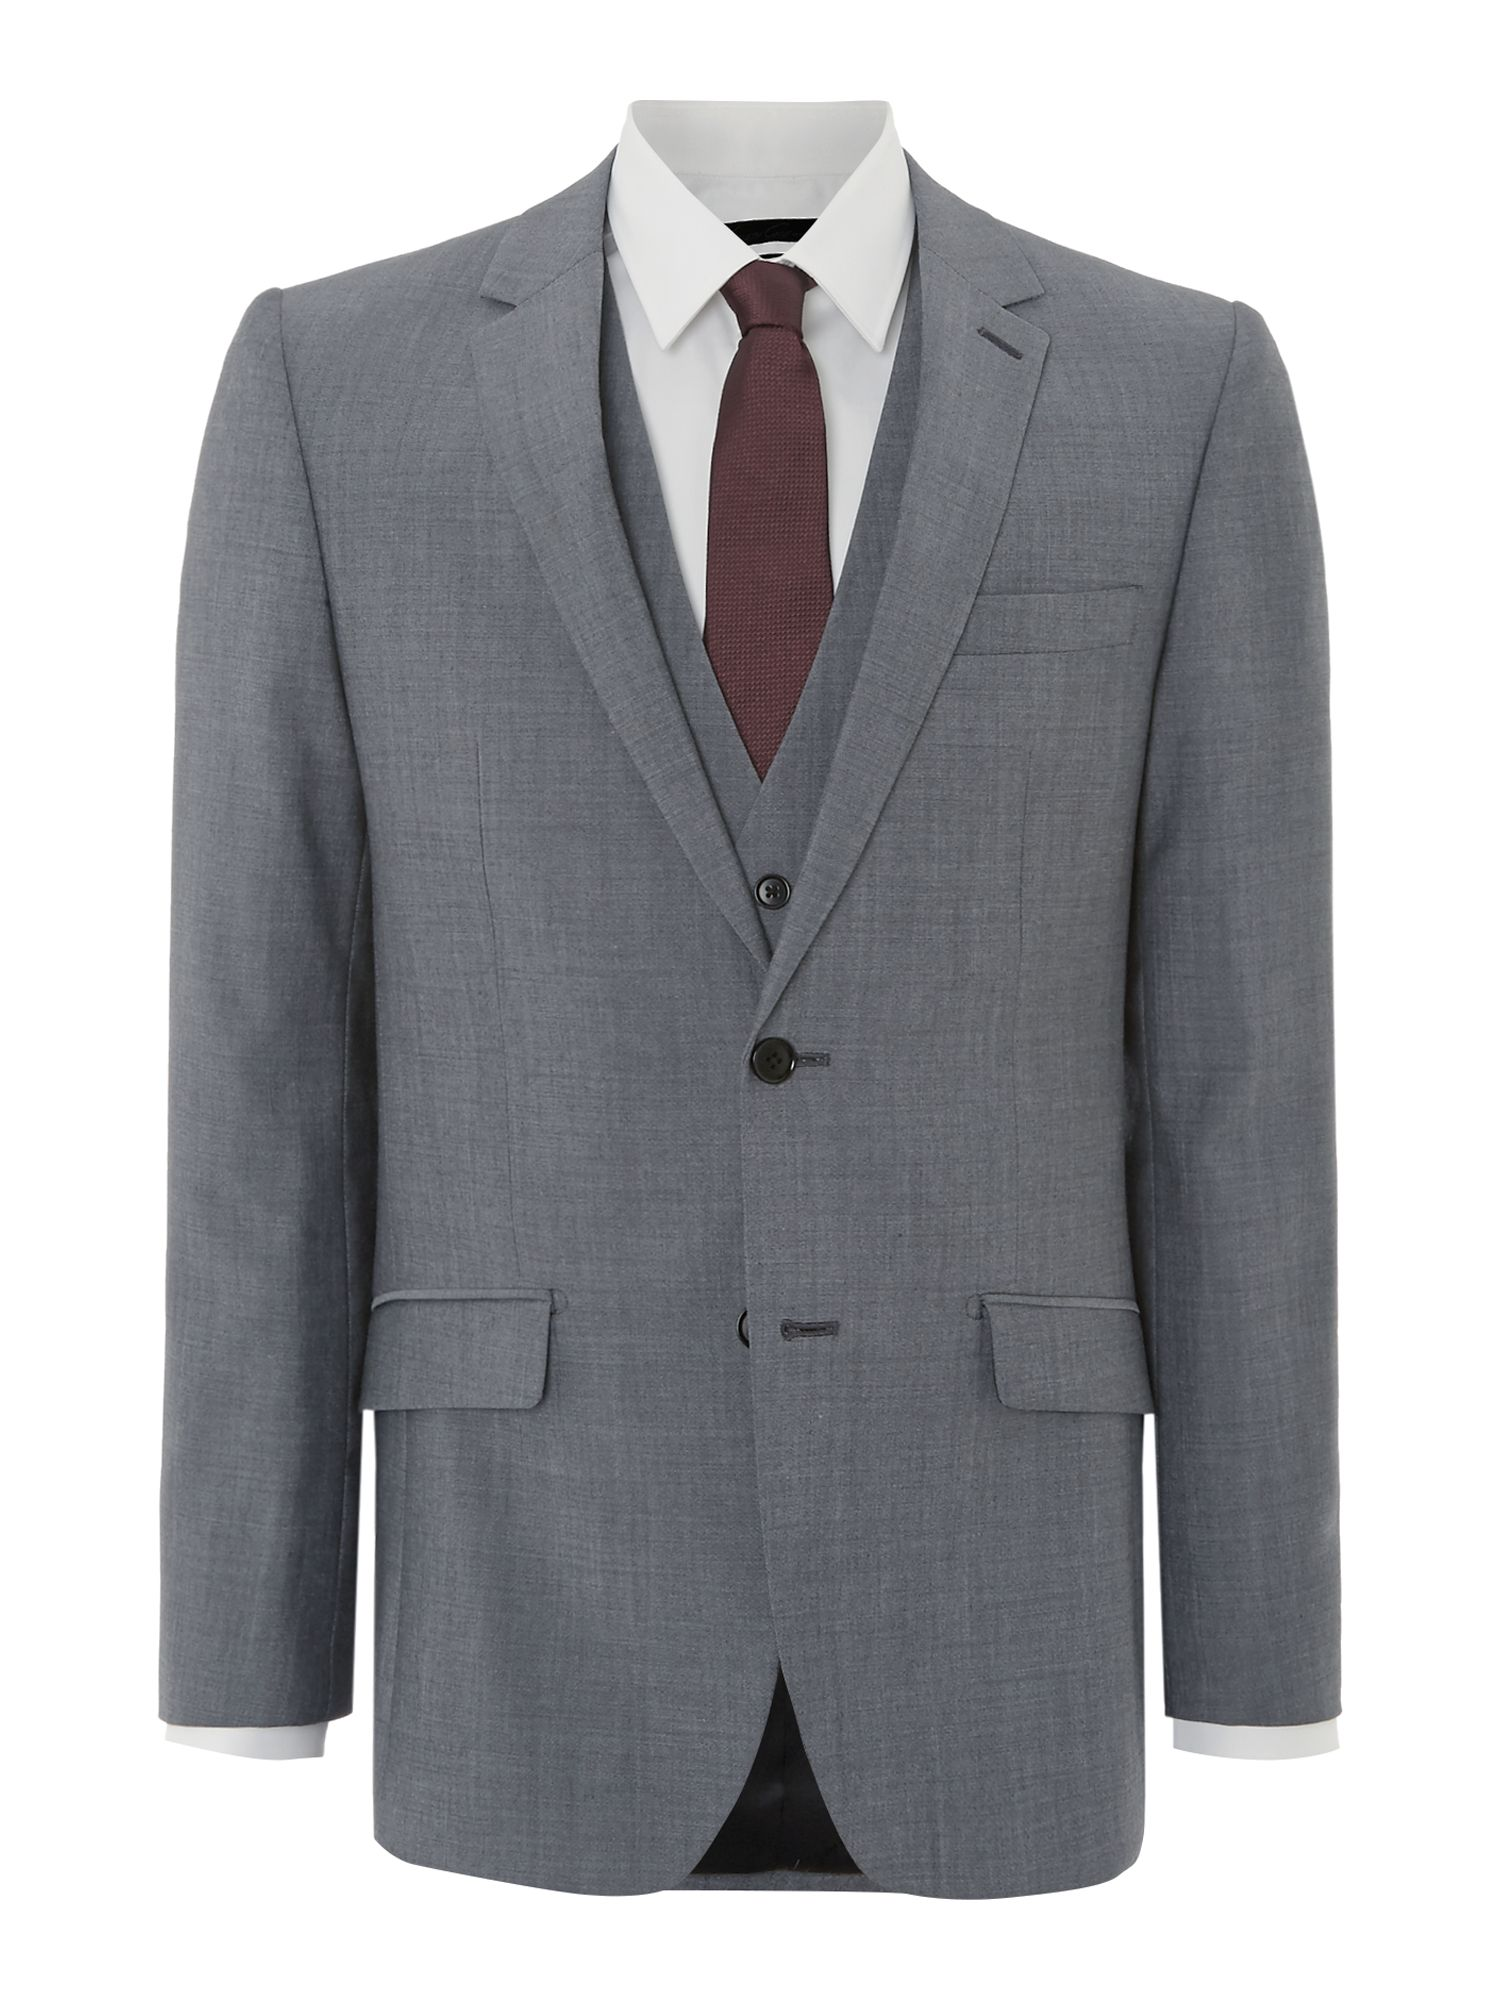 Wool mohair suit jacket